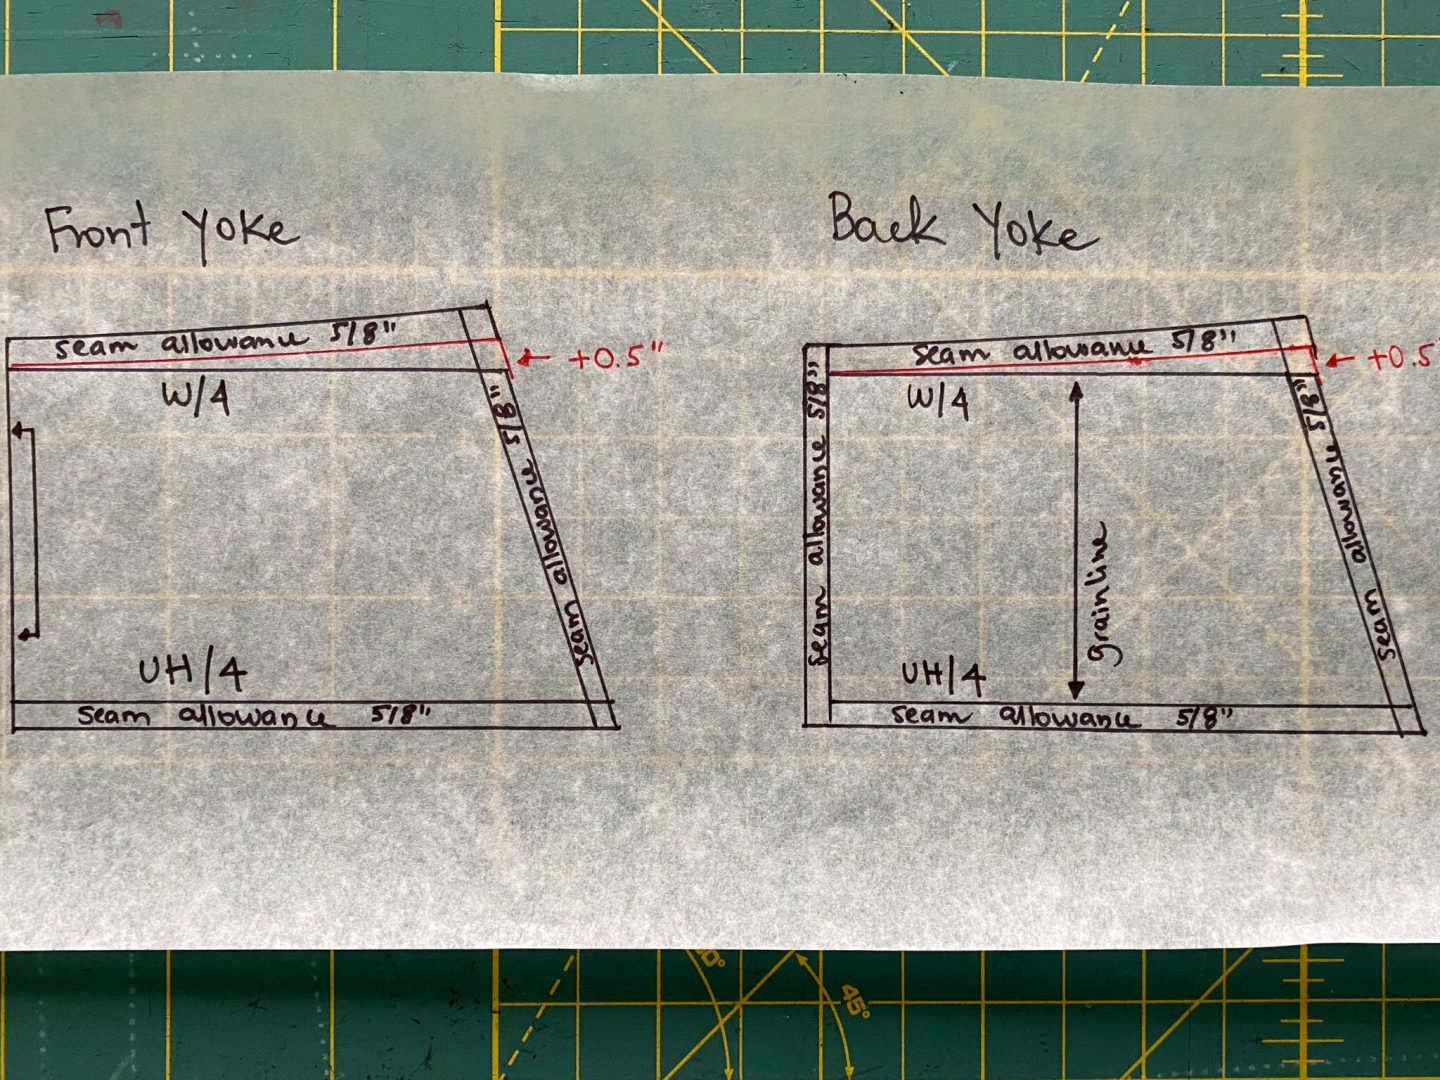 Image of front and back yoke pattern pieces